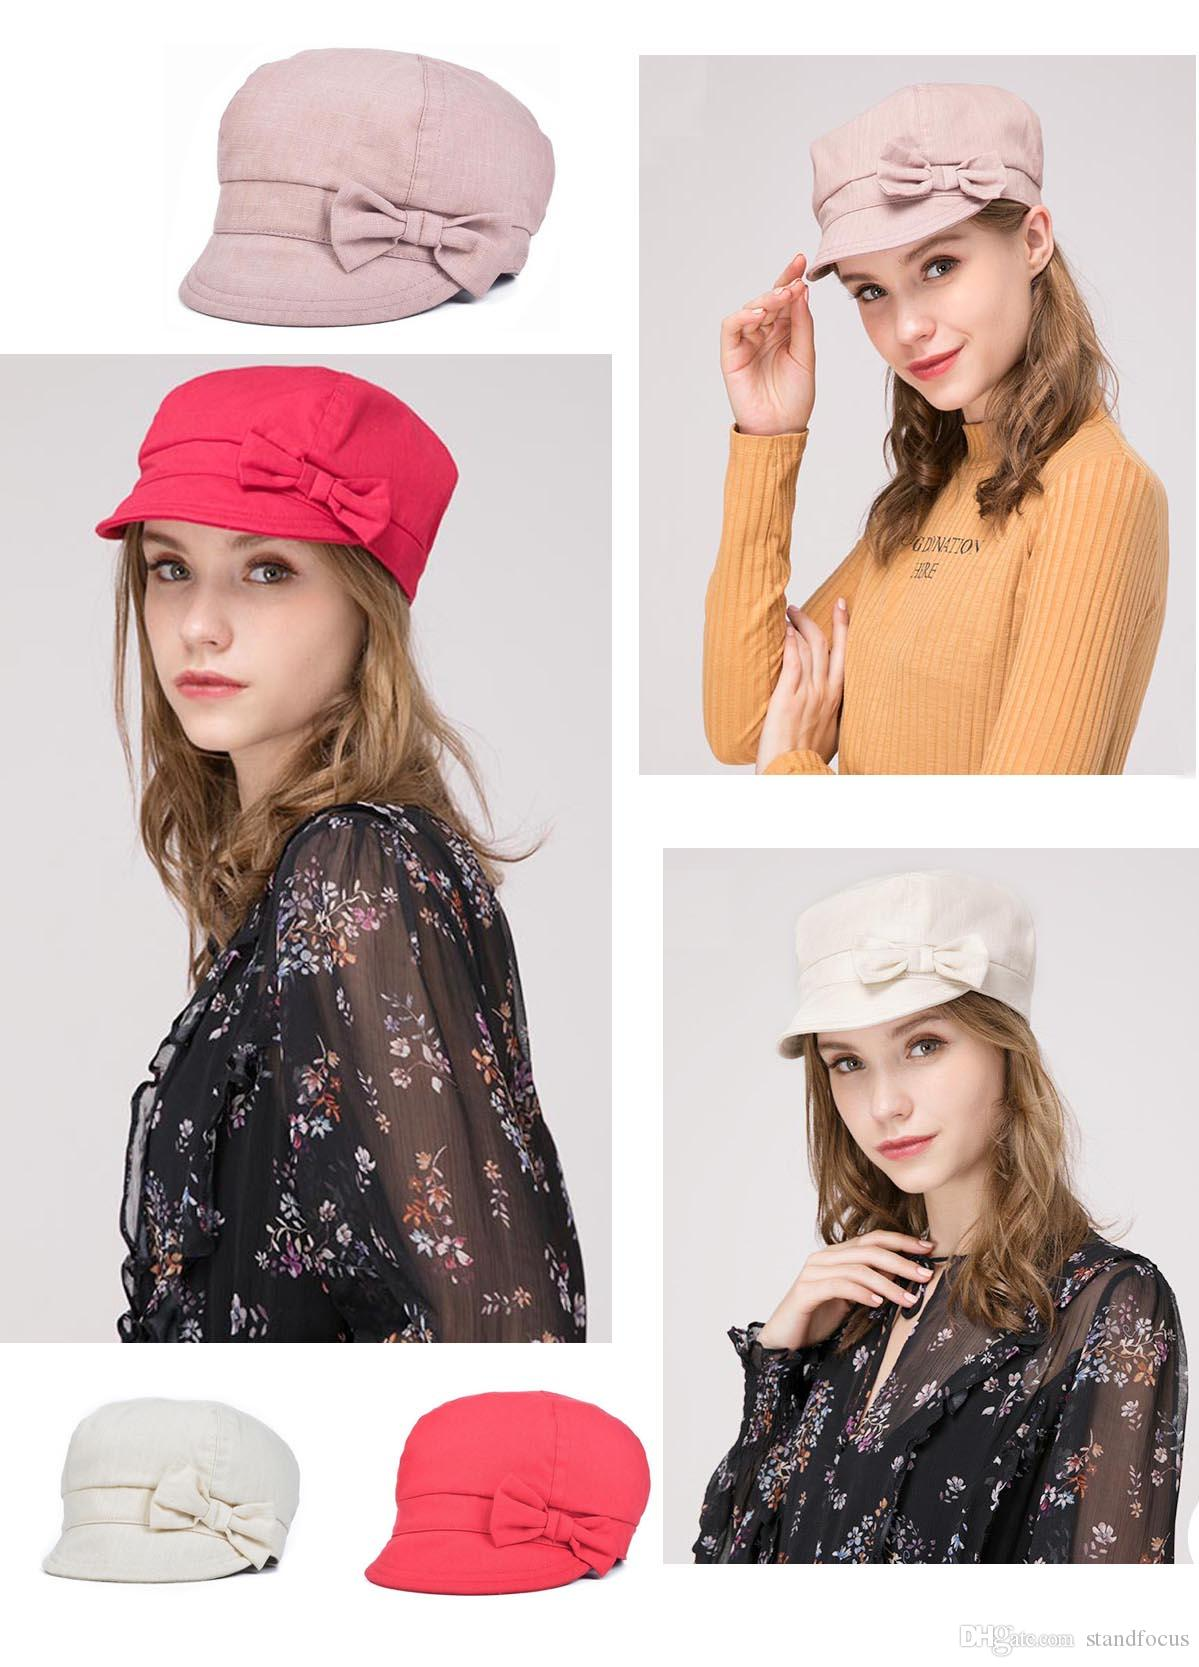 3112f97c8c8 ... Baker Boy Gatsby Women Hat Newsboy Cap Ladies Fashion Cotton Fabric  Spring Summer Fall Pink Cream Causal Chic Sweet Bow From Standfocus